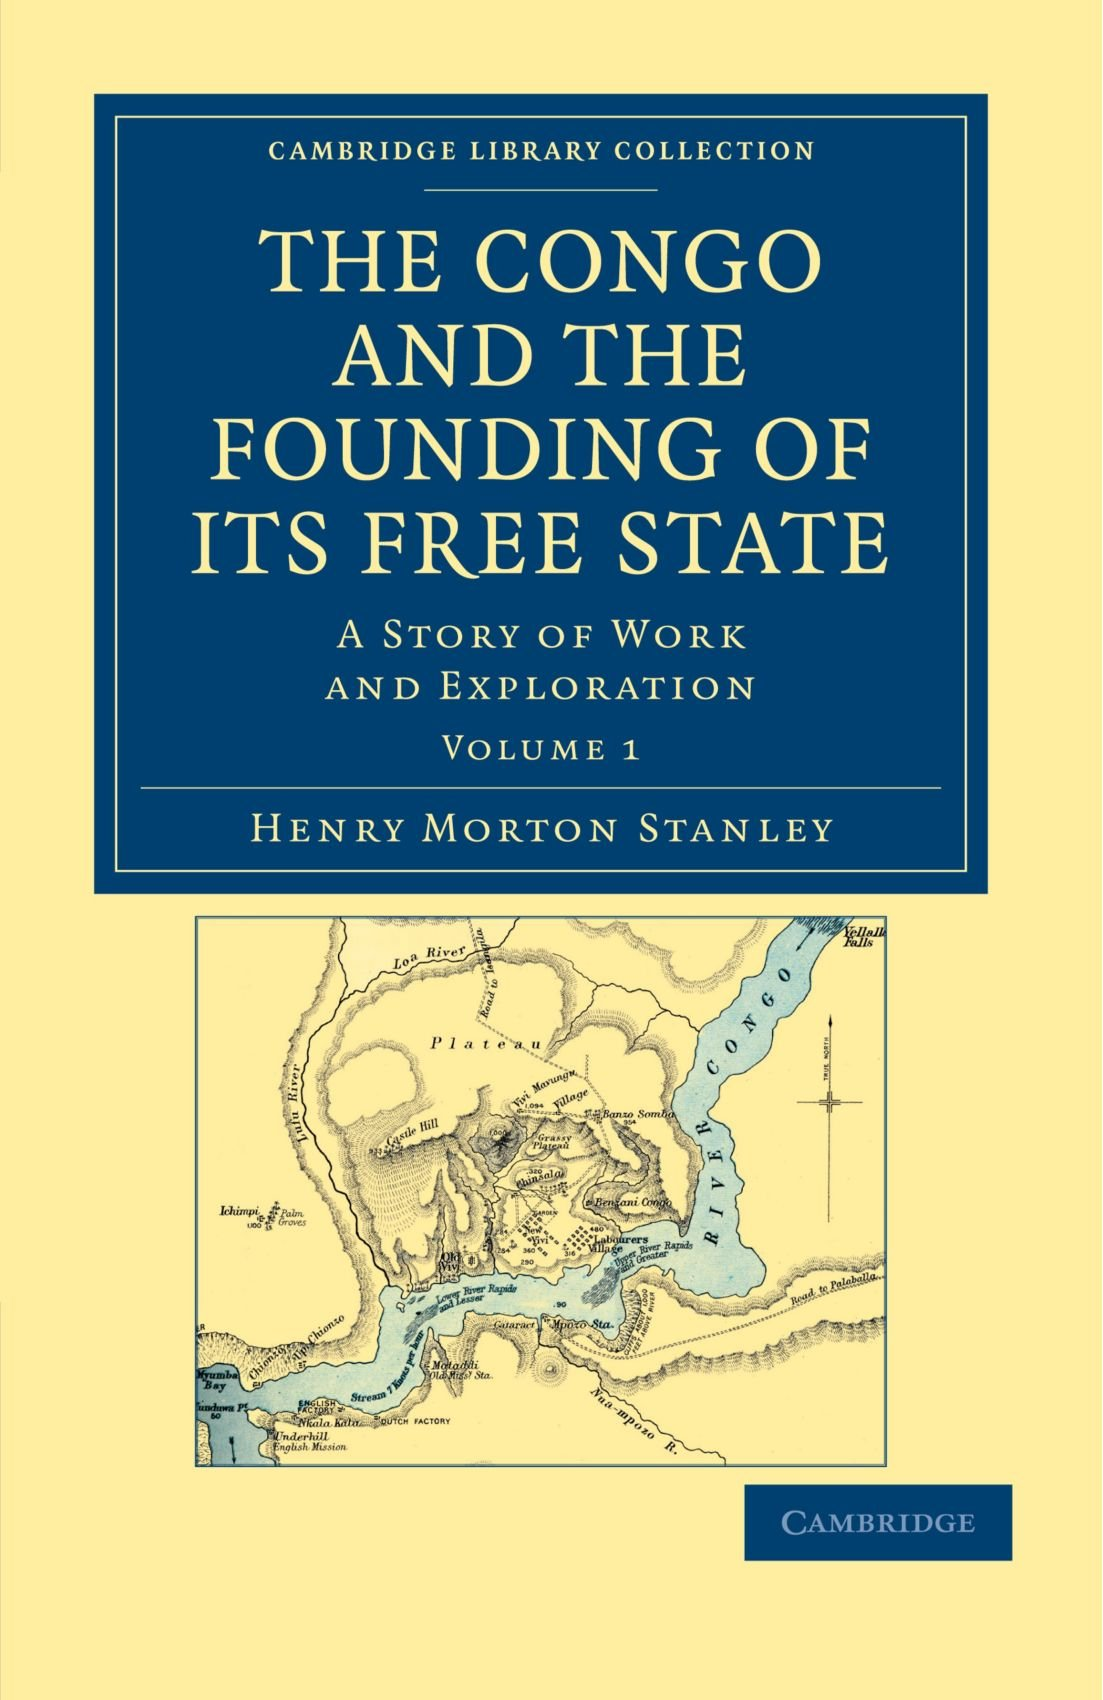 Download The Congo and the Founding of its Free State: A Story of Work and Exploration (Cambridge Library Collection - African Studies) pdf epub